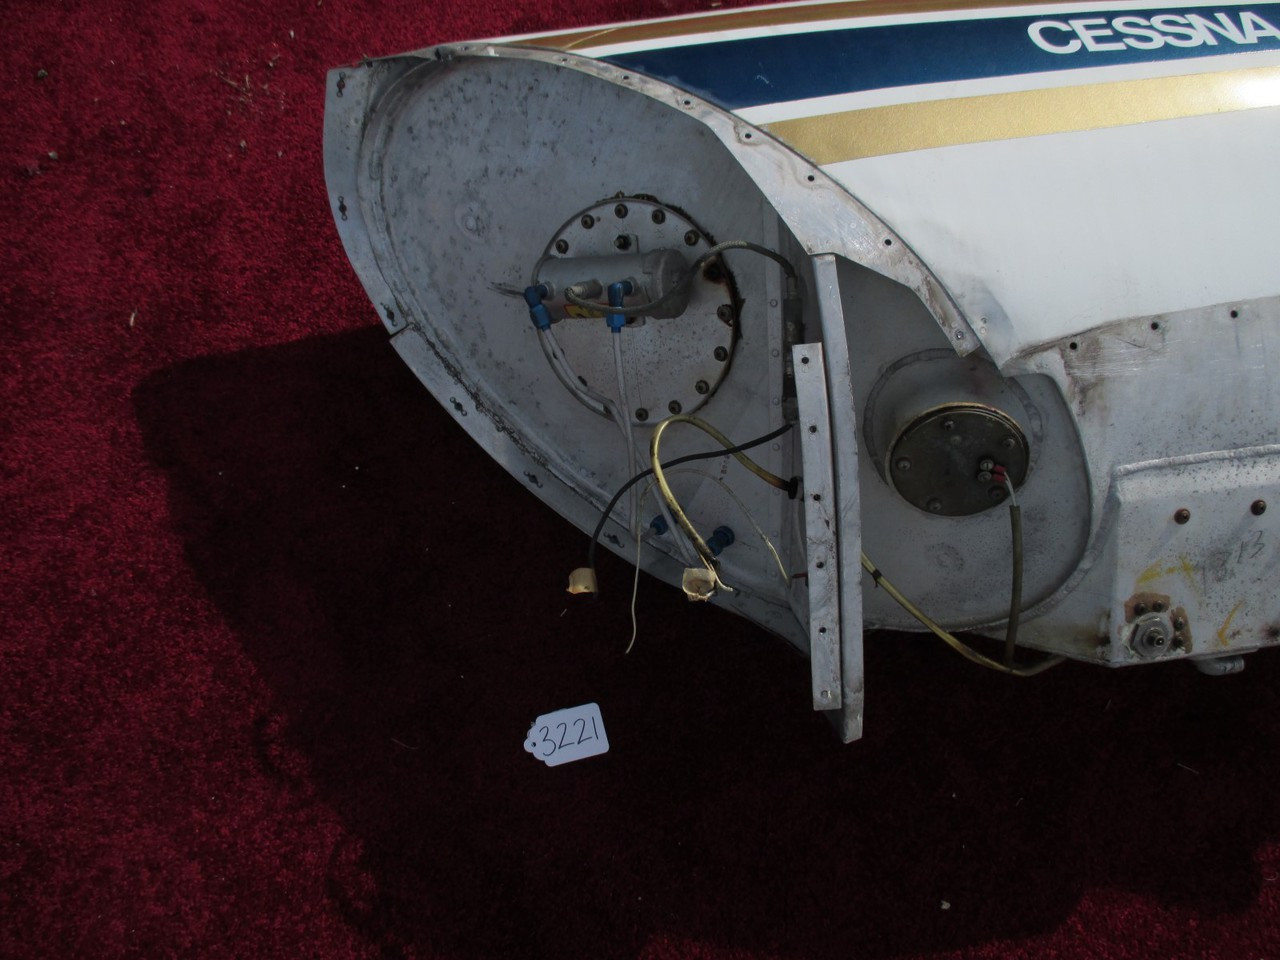 Cessna 310, 340, 401, 402, 411, 414, 421 RH Tip Tank PN 5092301-15,  5092301-1 (EMAIL OR CALL TO BUY)